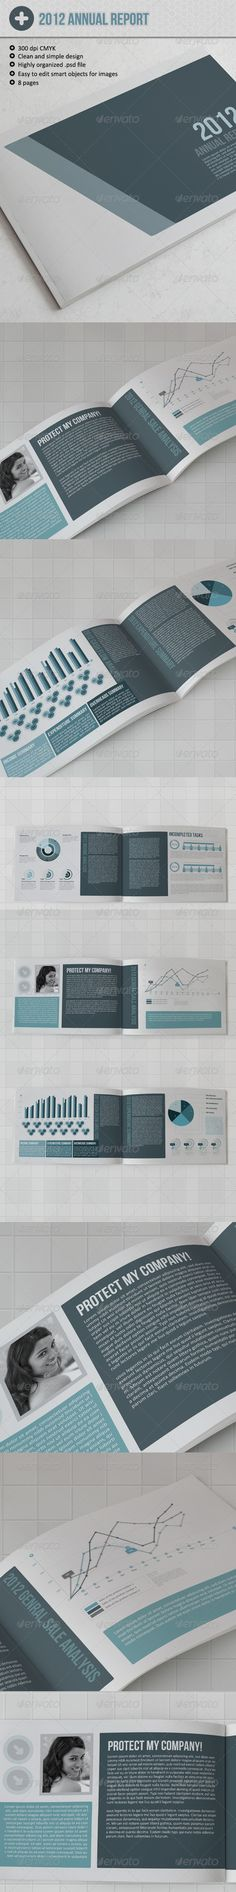 #Brochure #report #editorial #design #print